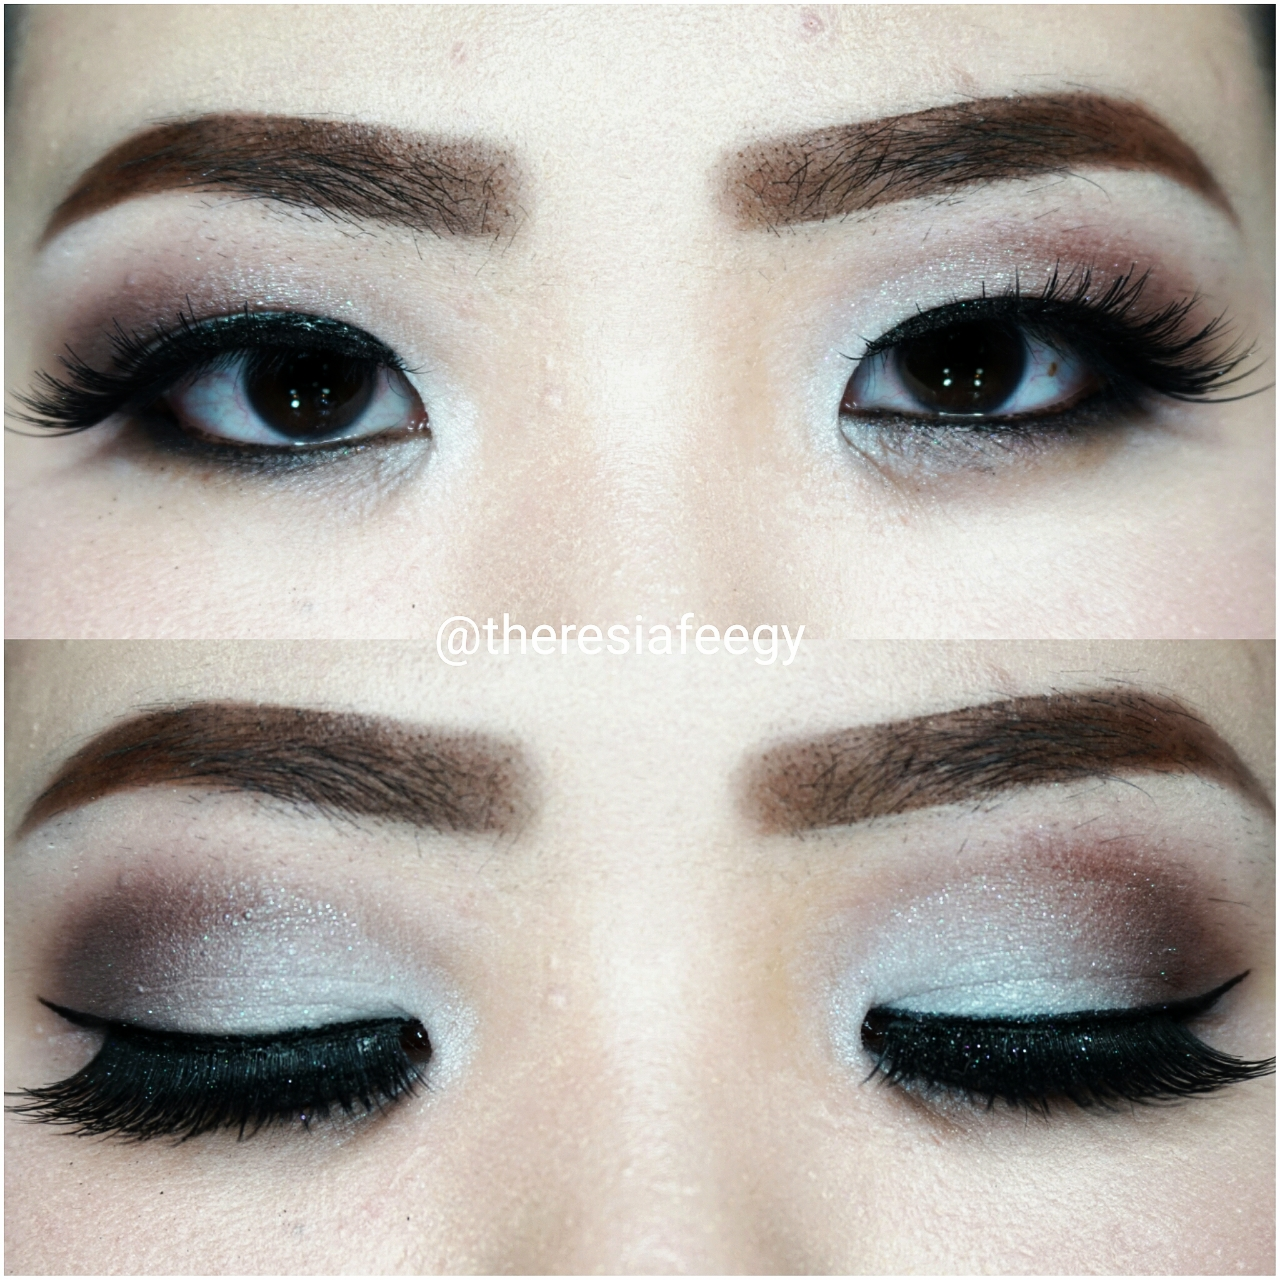 sephora makeup academy palette. a soft brown romantic inspired look makeup tutorial with sephora academy palette sephora makeup academy palette